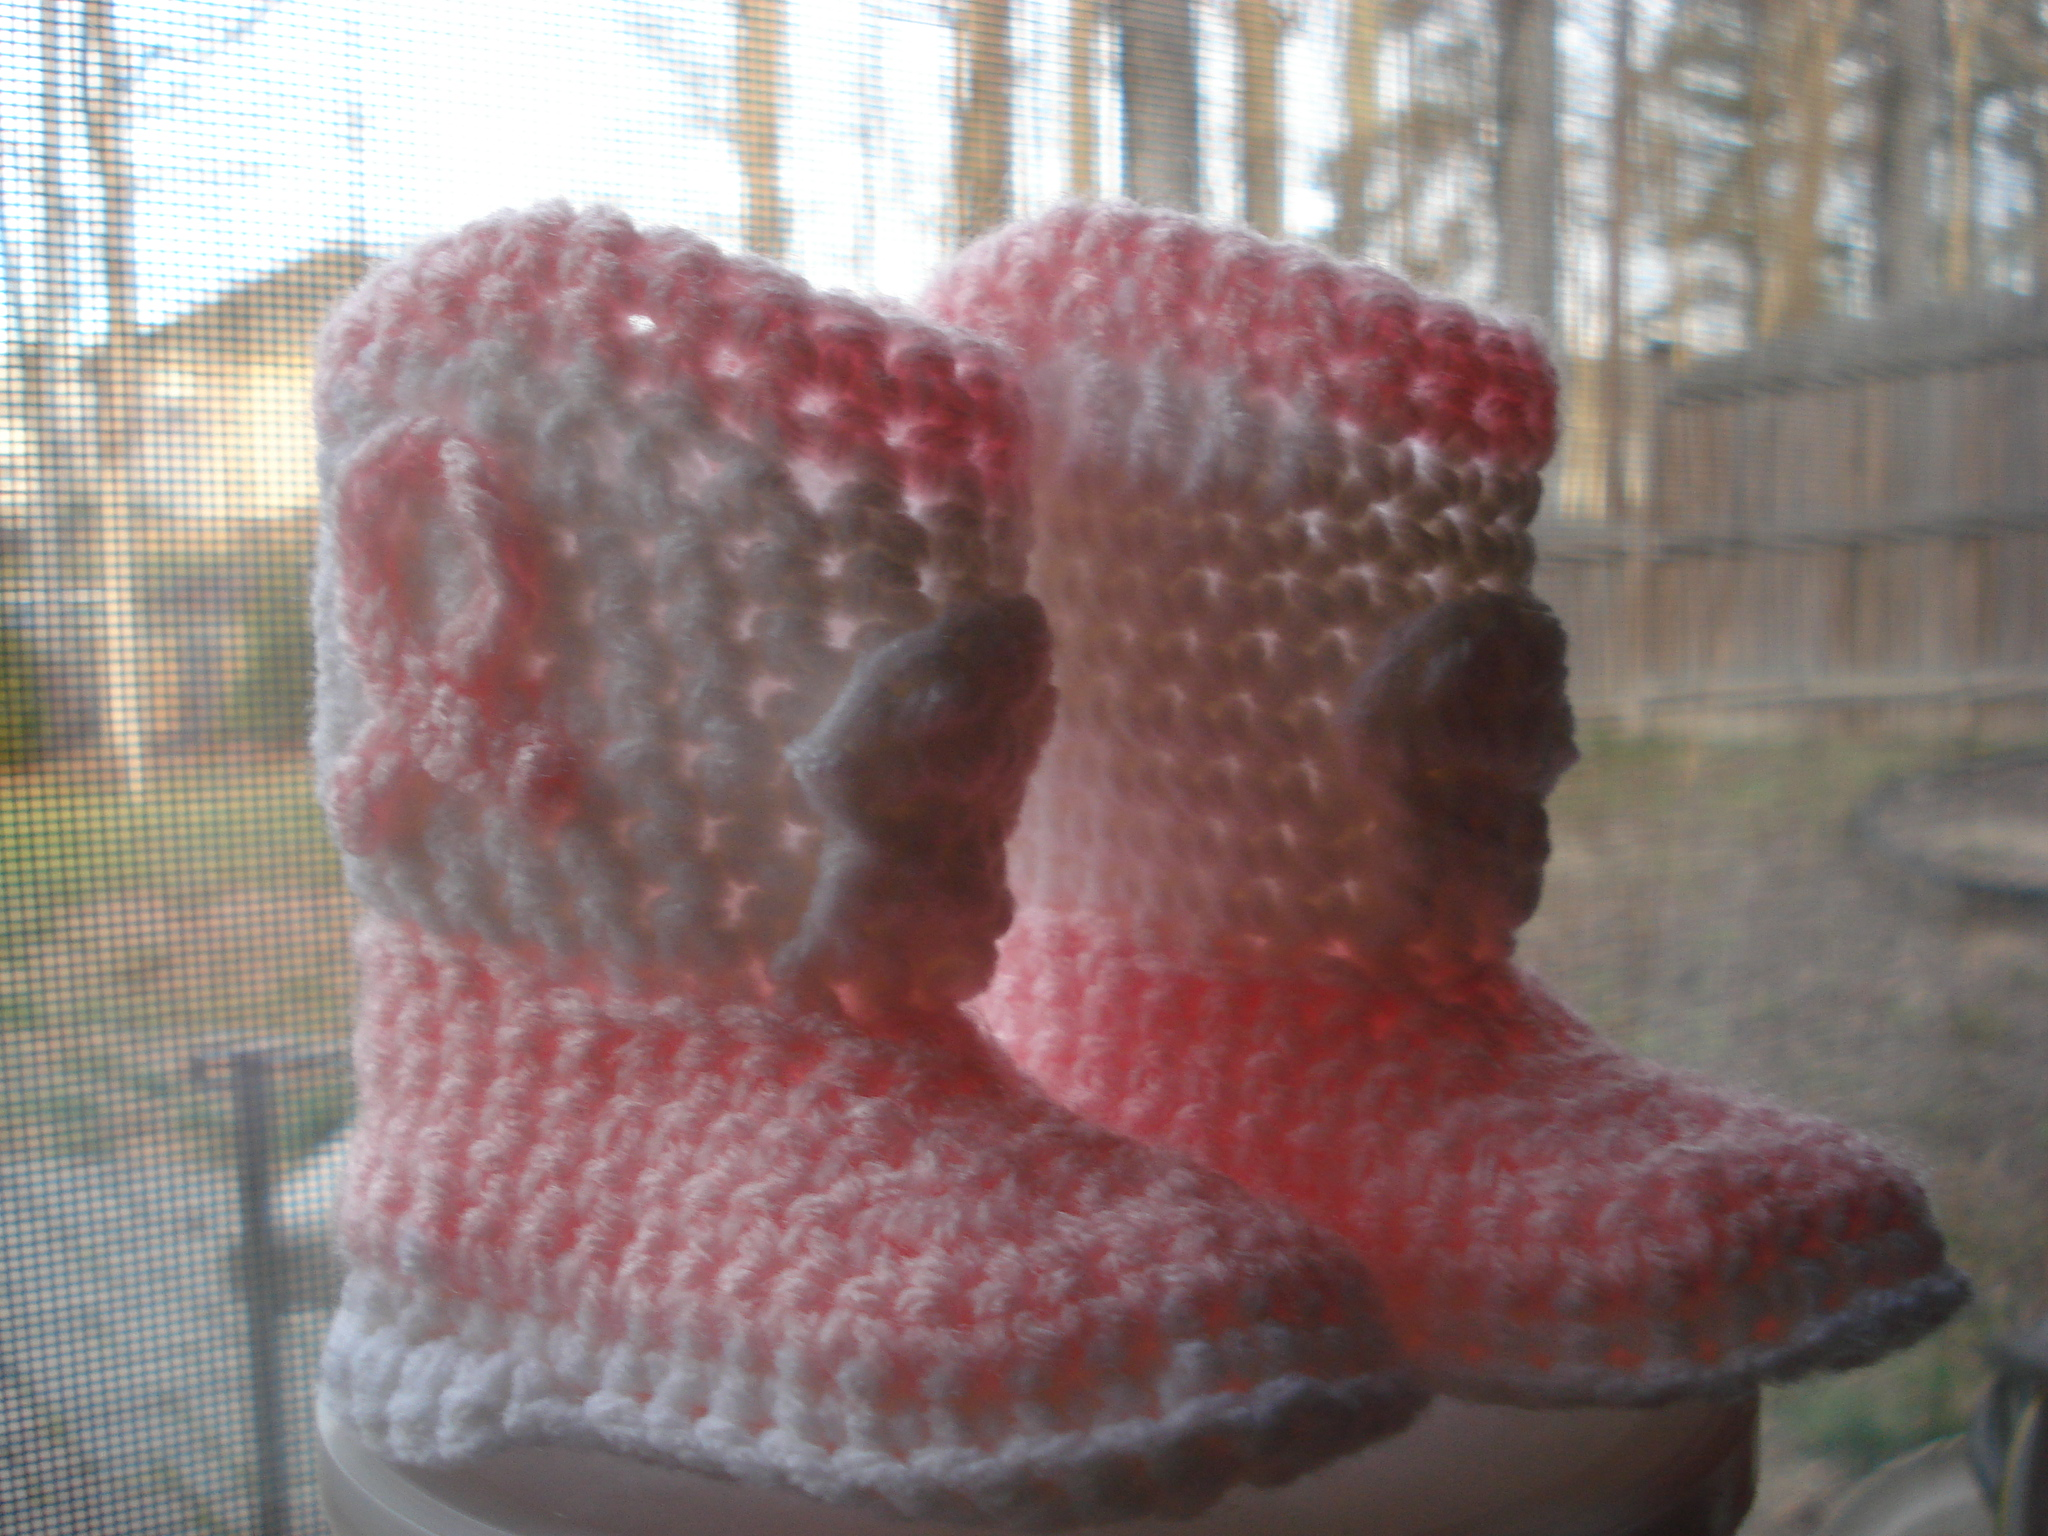 CROCHET COWBOY BOOT PATTERN Crochet Patterns